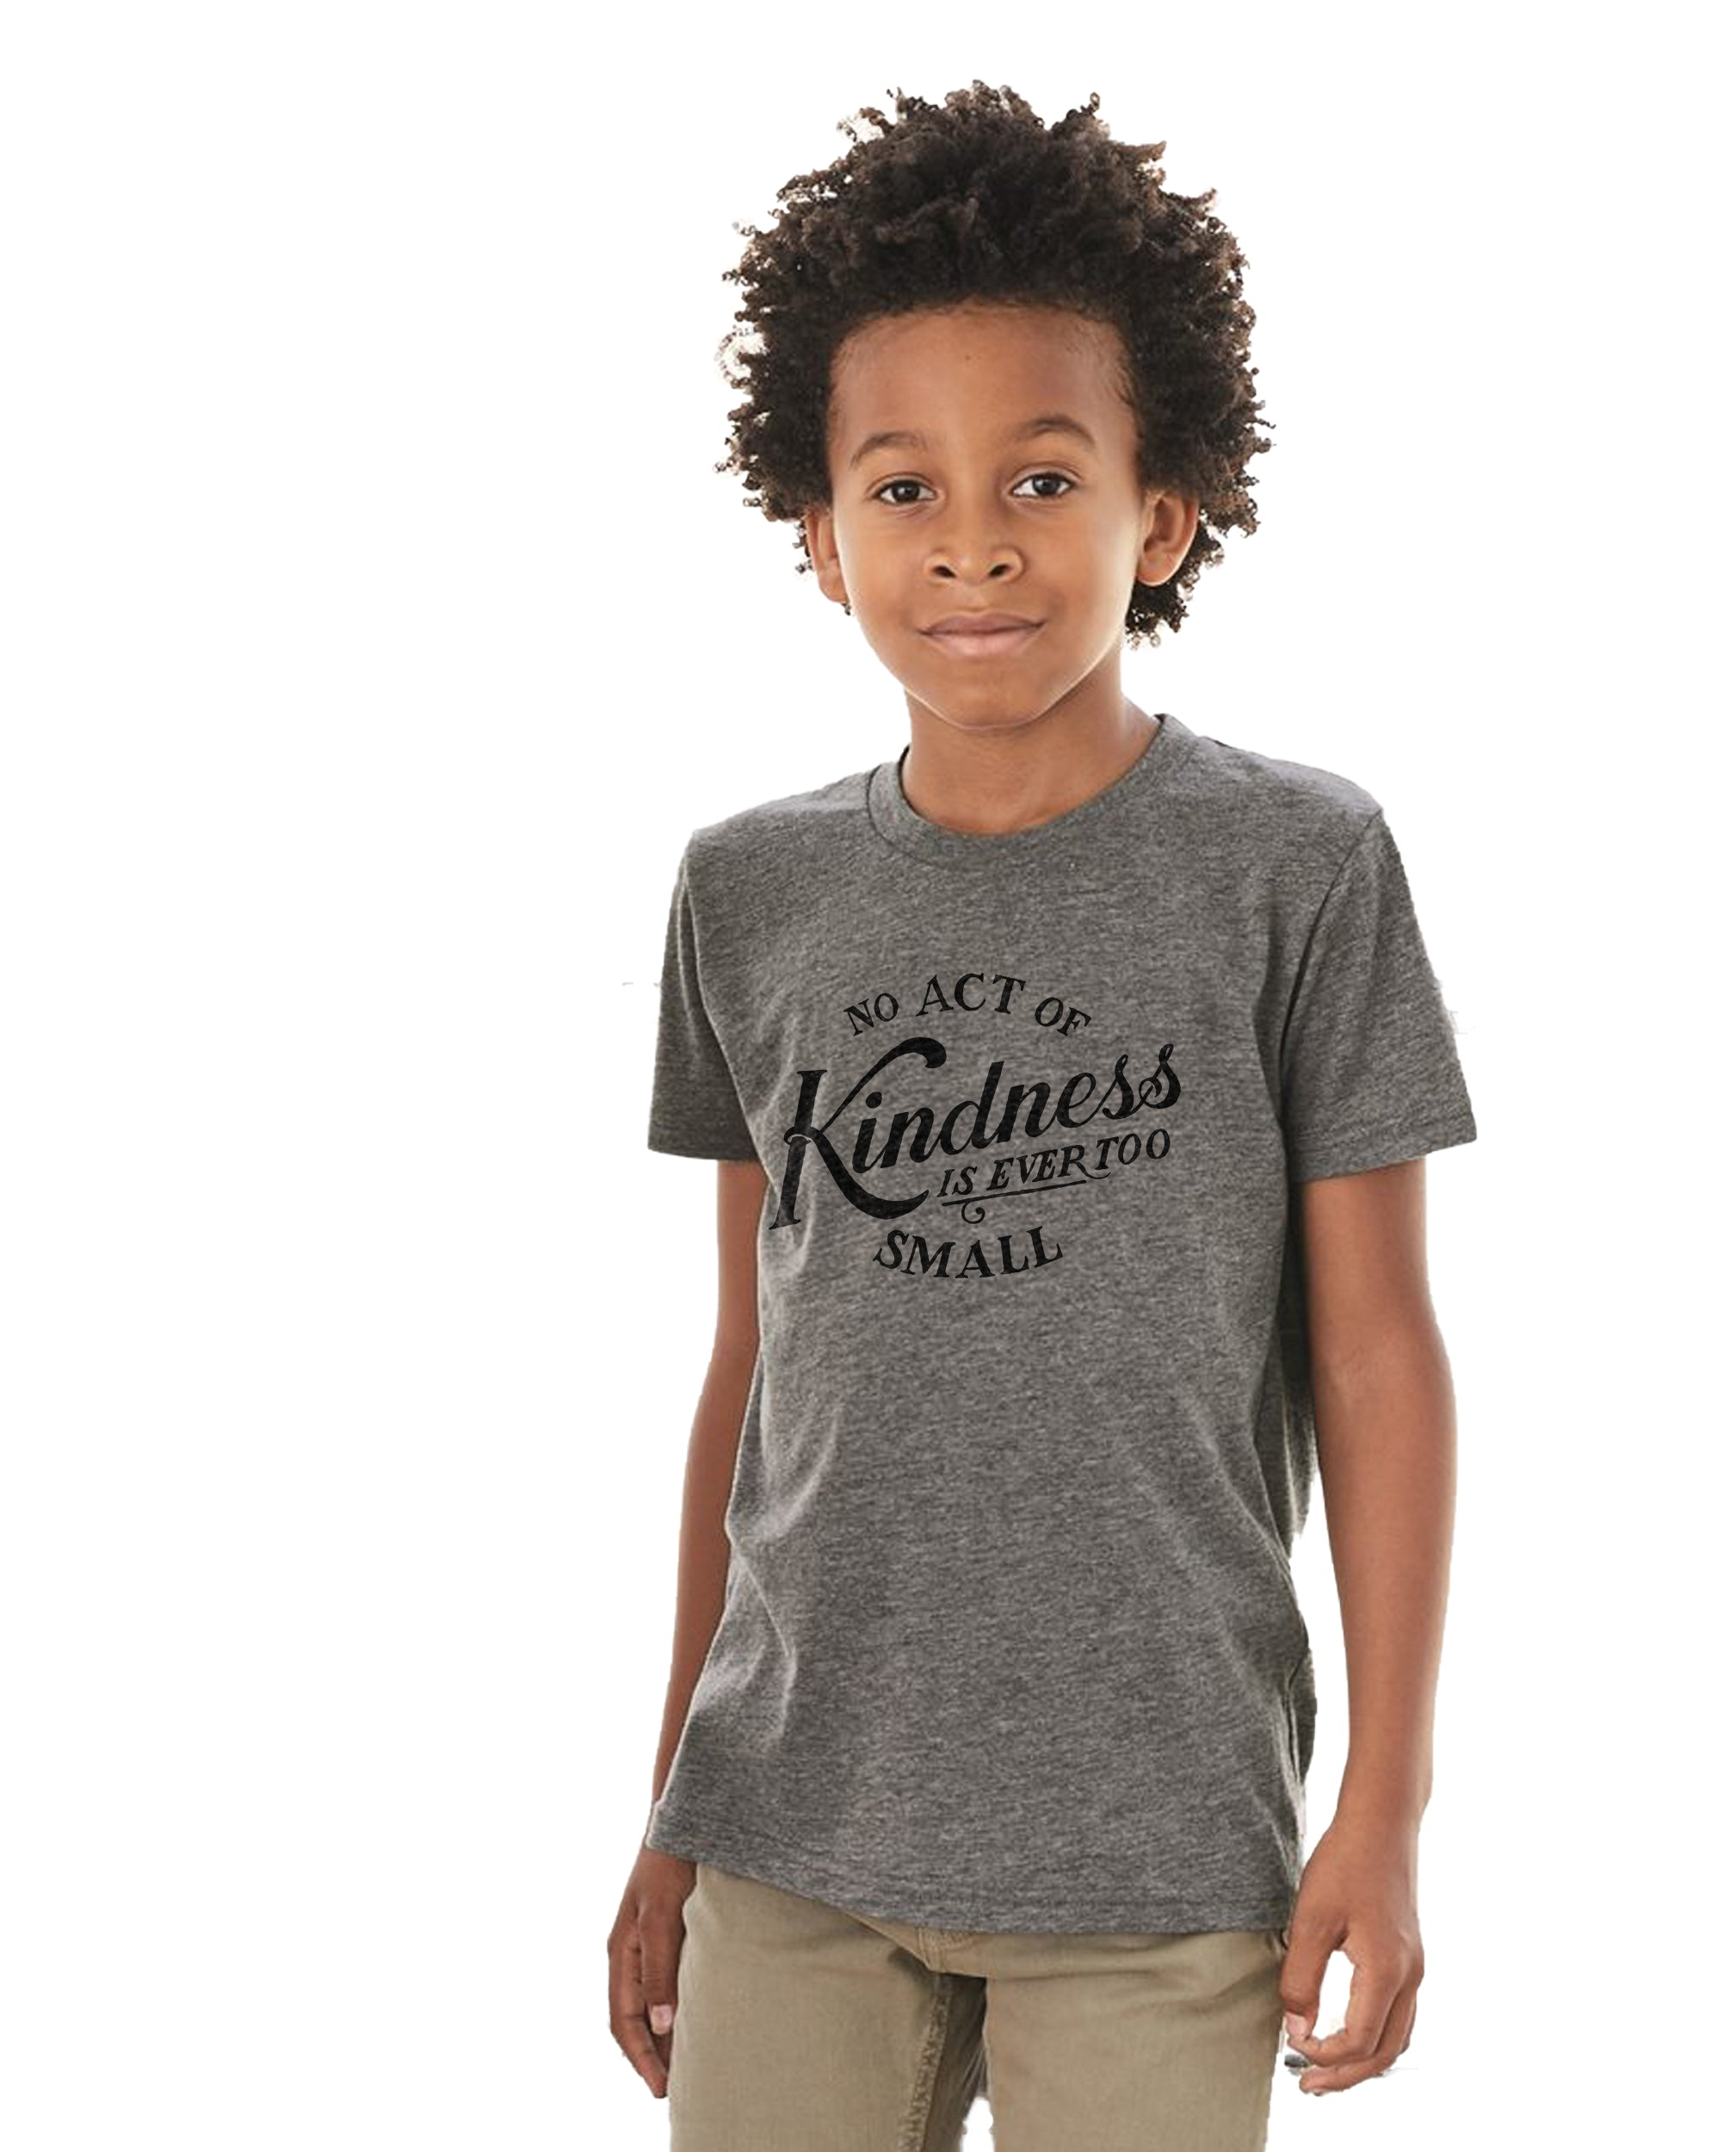 No Single Act Of Kindness Is Ever Too Small Kids Premium Short Sleeve Crew